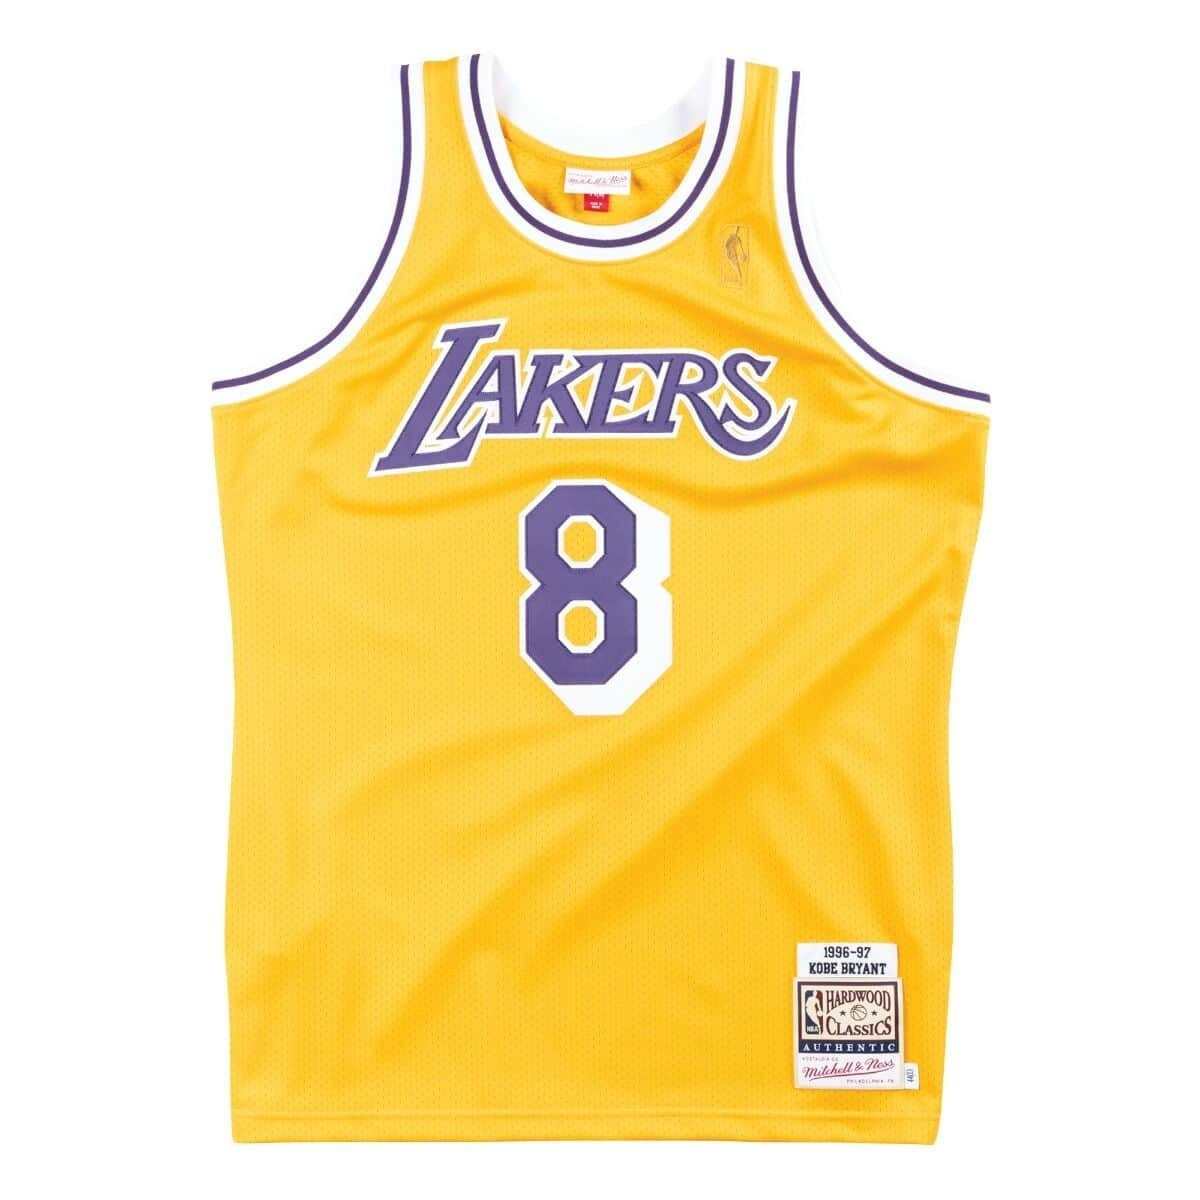 Mitchell & Ness Authentic Jersey L.A. Lakers Home Kobe Bryant '1996-97'